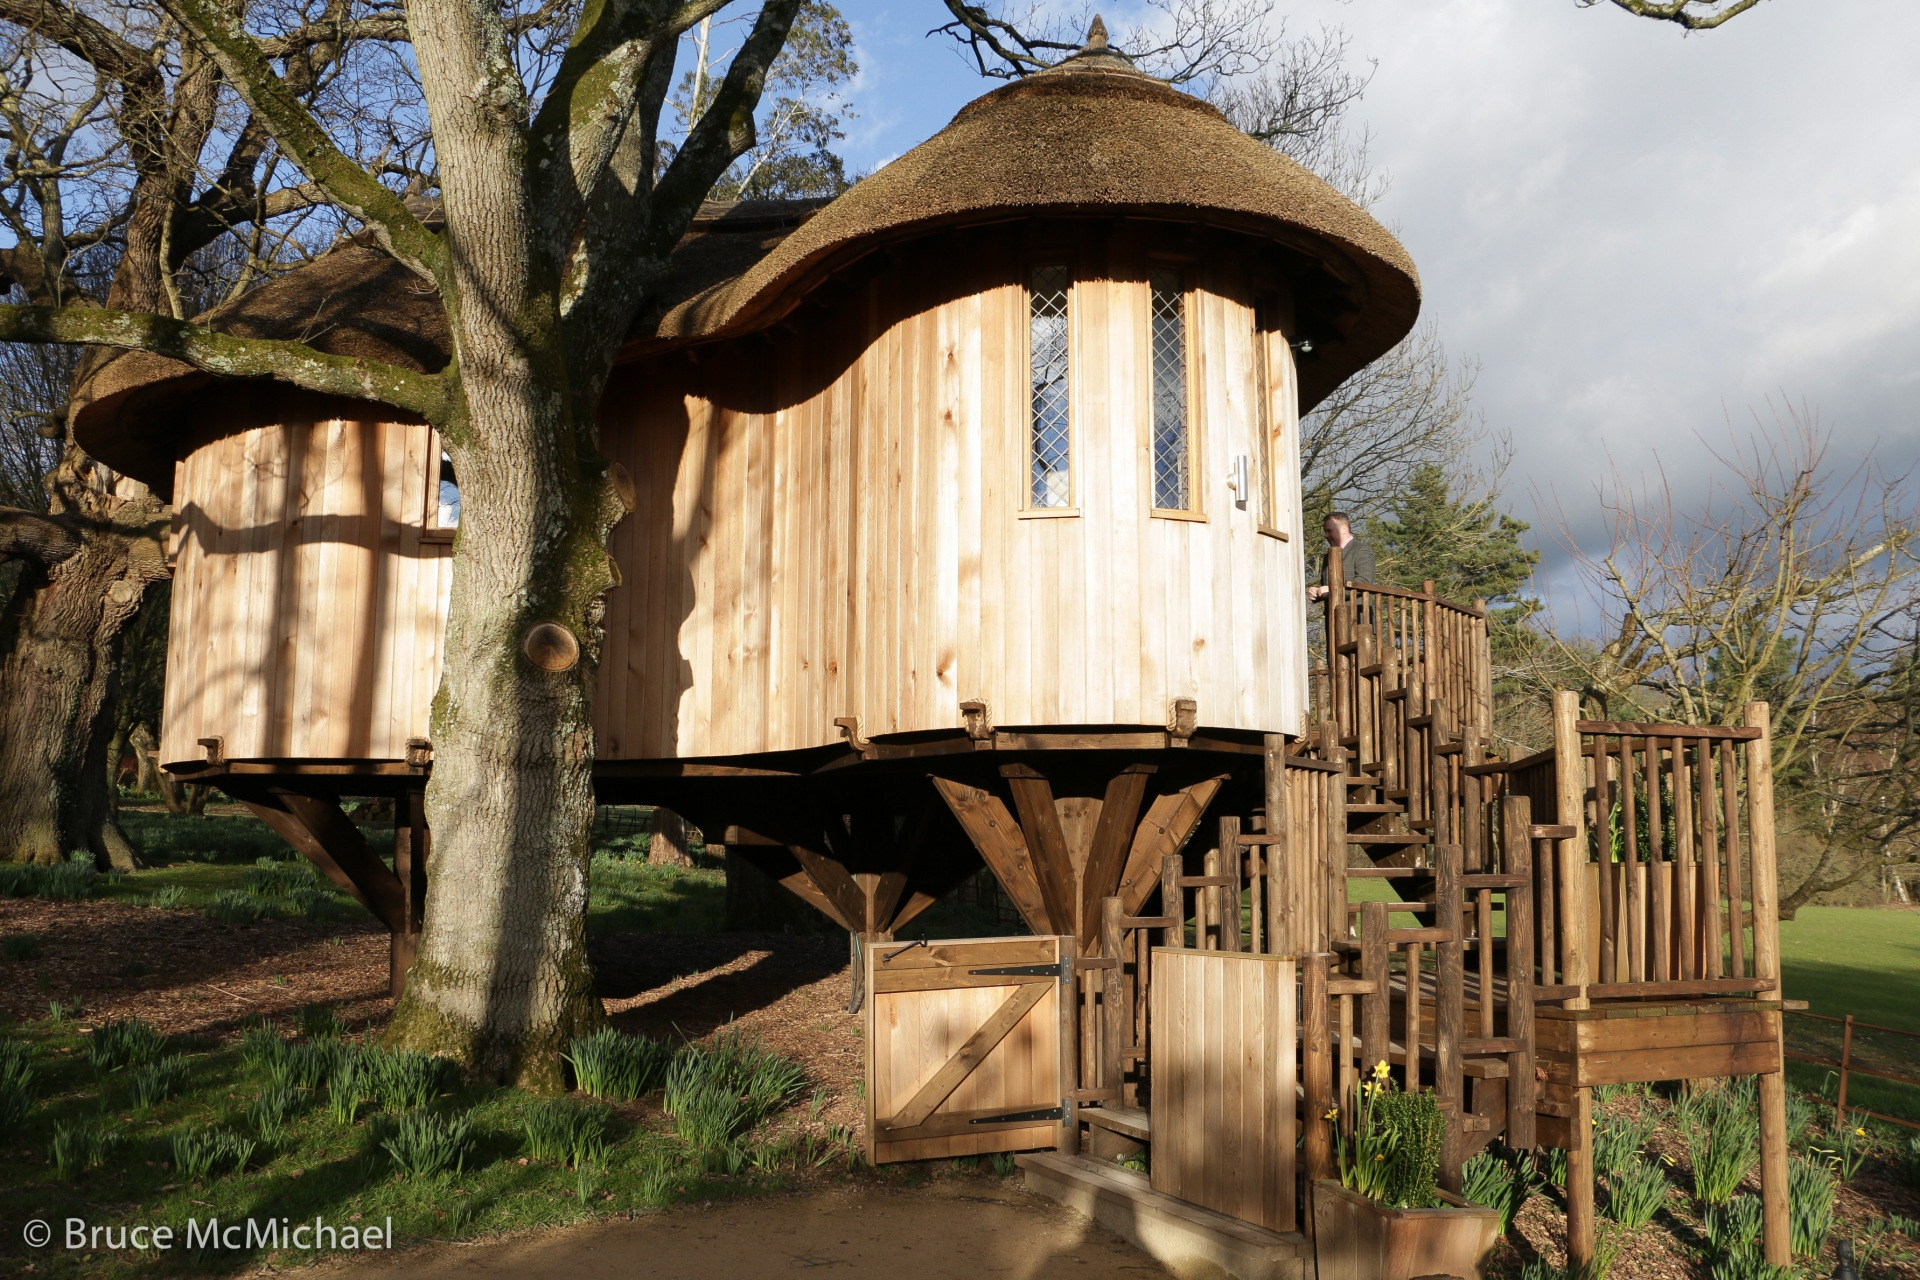 Deer Park's spectacular treehouse, ideal for romantics